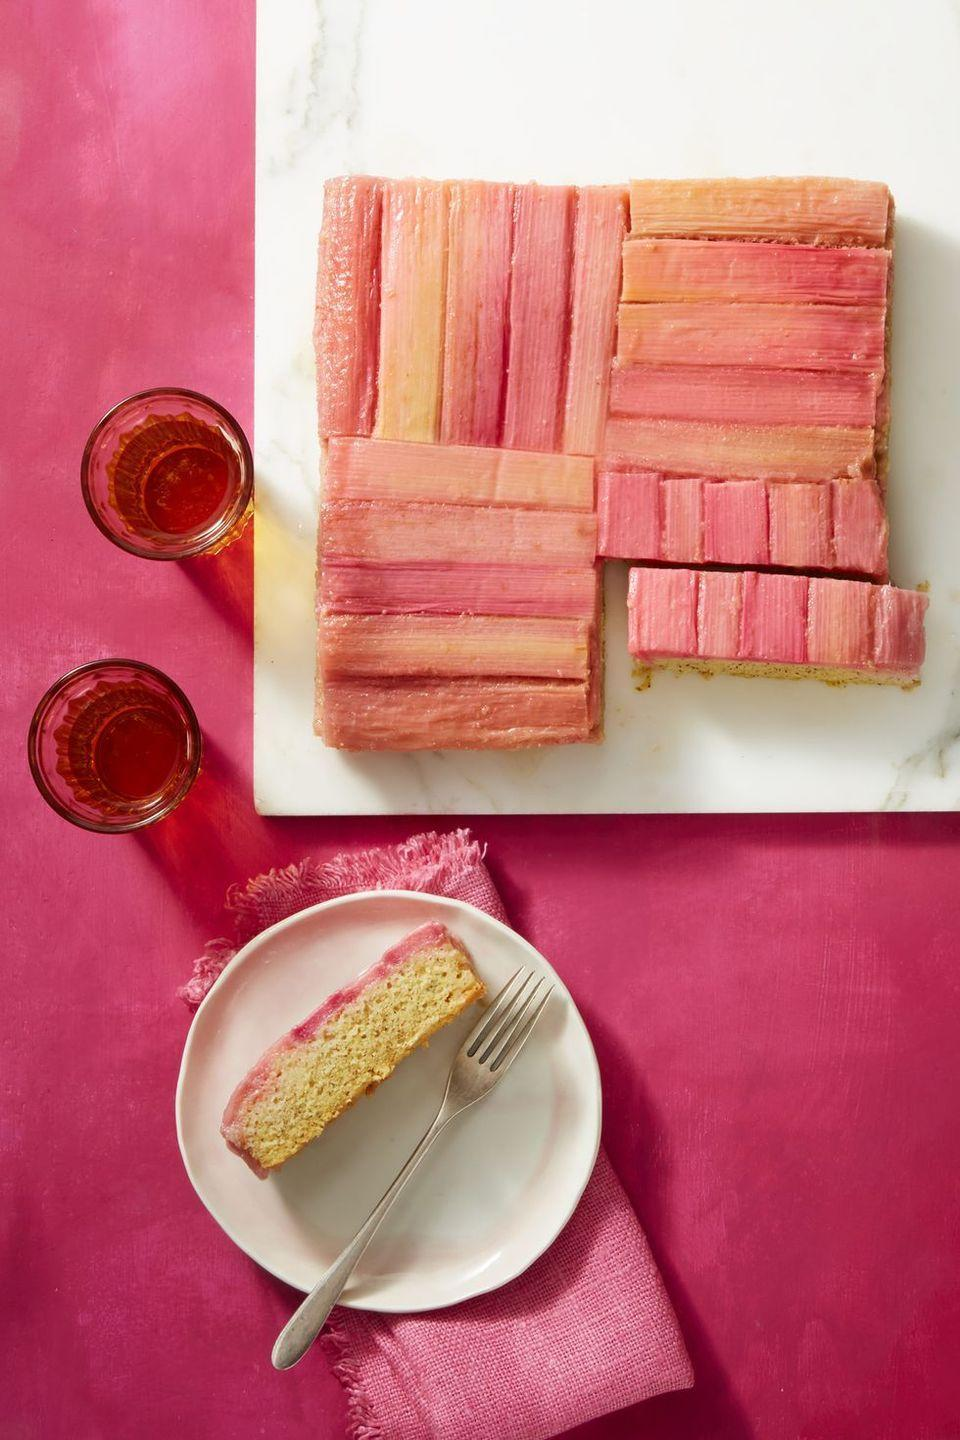 "<p>For if your mom is one of the rare gems who likes rhubarb (or if you just want to try something new). </p><p><em><a href=""https://www.womansday.com/food-recipes/food-drinks/a19810598/rhubarb-and-almond-upside-down-cake-recipe/"" rel=""nofollow noopener"" target=""_blank"" data-ylk=""slk:Get the recipe from Woman's Day »"" class=""link rapid-noclick-resp"">Get the recipe from Woman's Day »</a></em></p>"